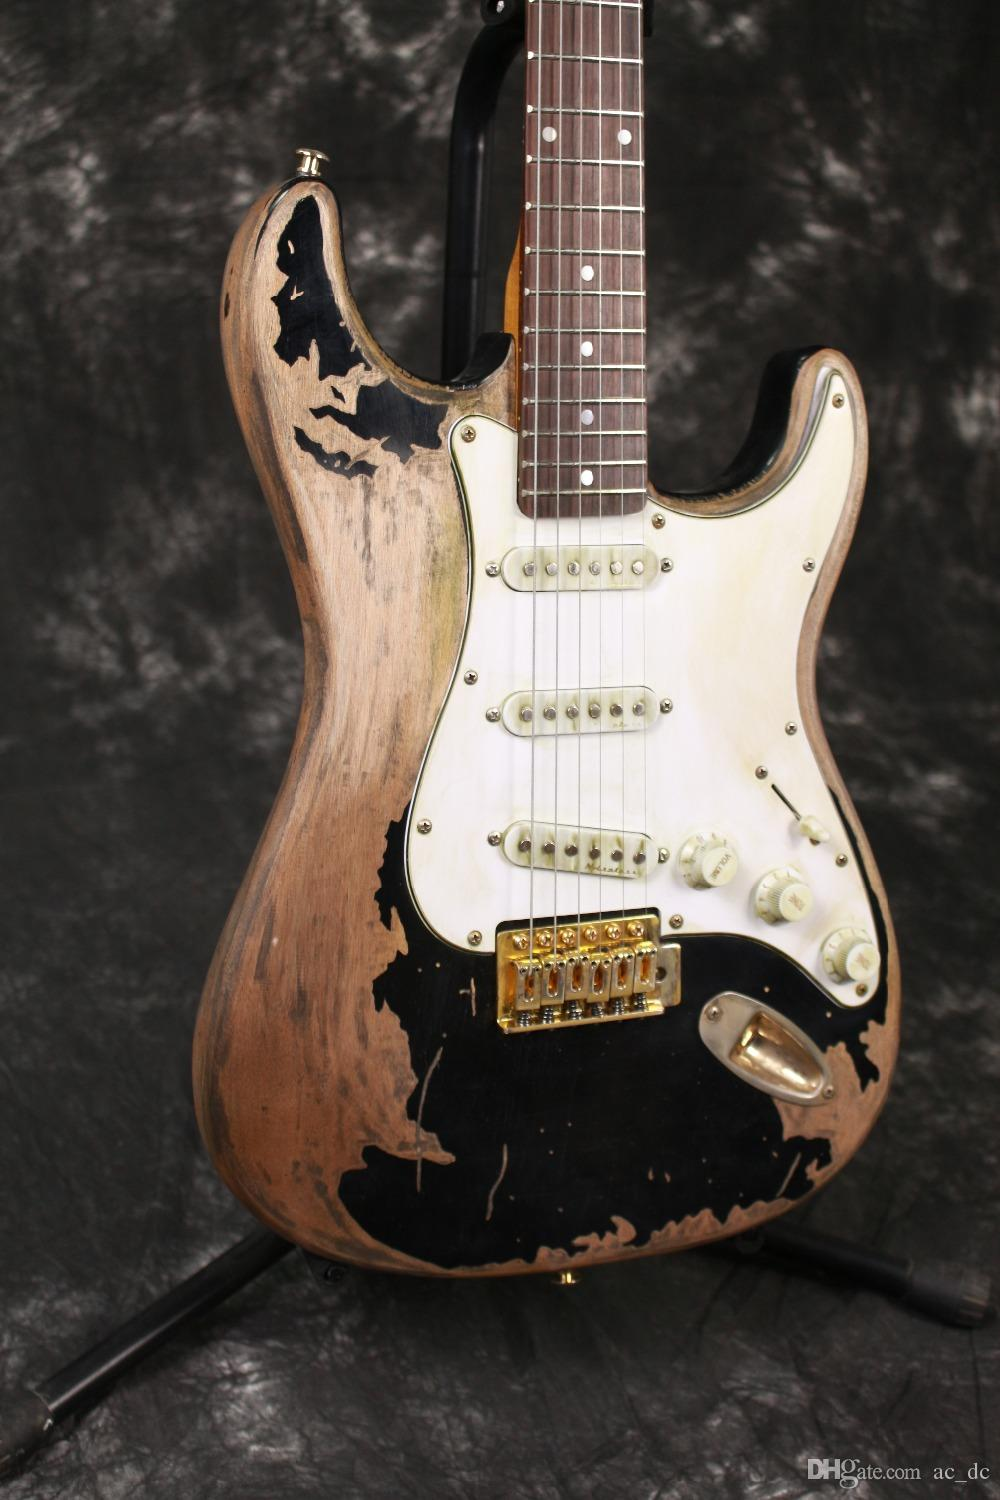 Handwork John Mayer Strat Limited Edition Black 1 Cruz Masterbuilt Heavy Relic Electric Guitar Aged Hardware Nitrolacquer Paint Straps